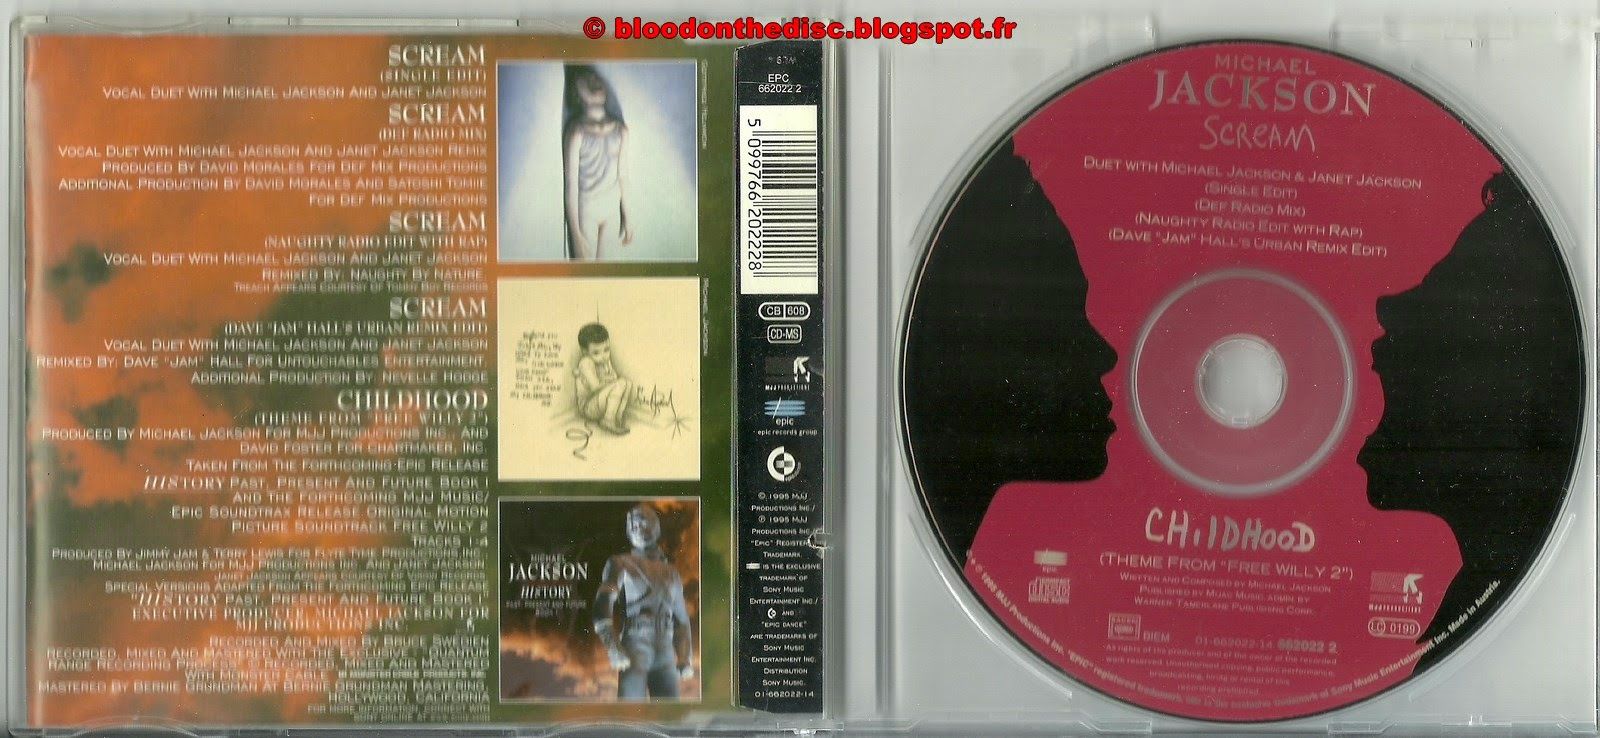 Scream Maxi CD Single